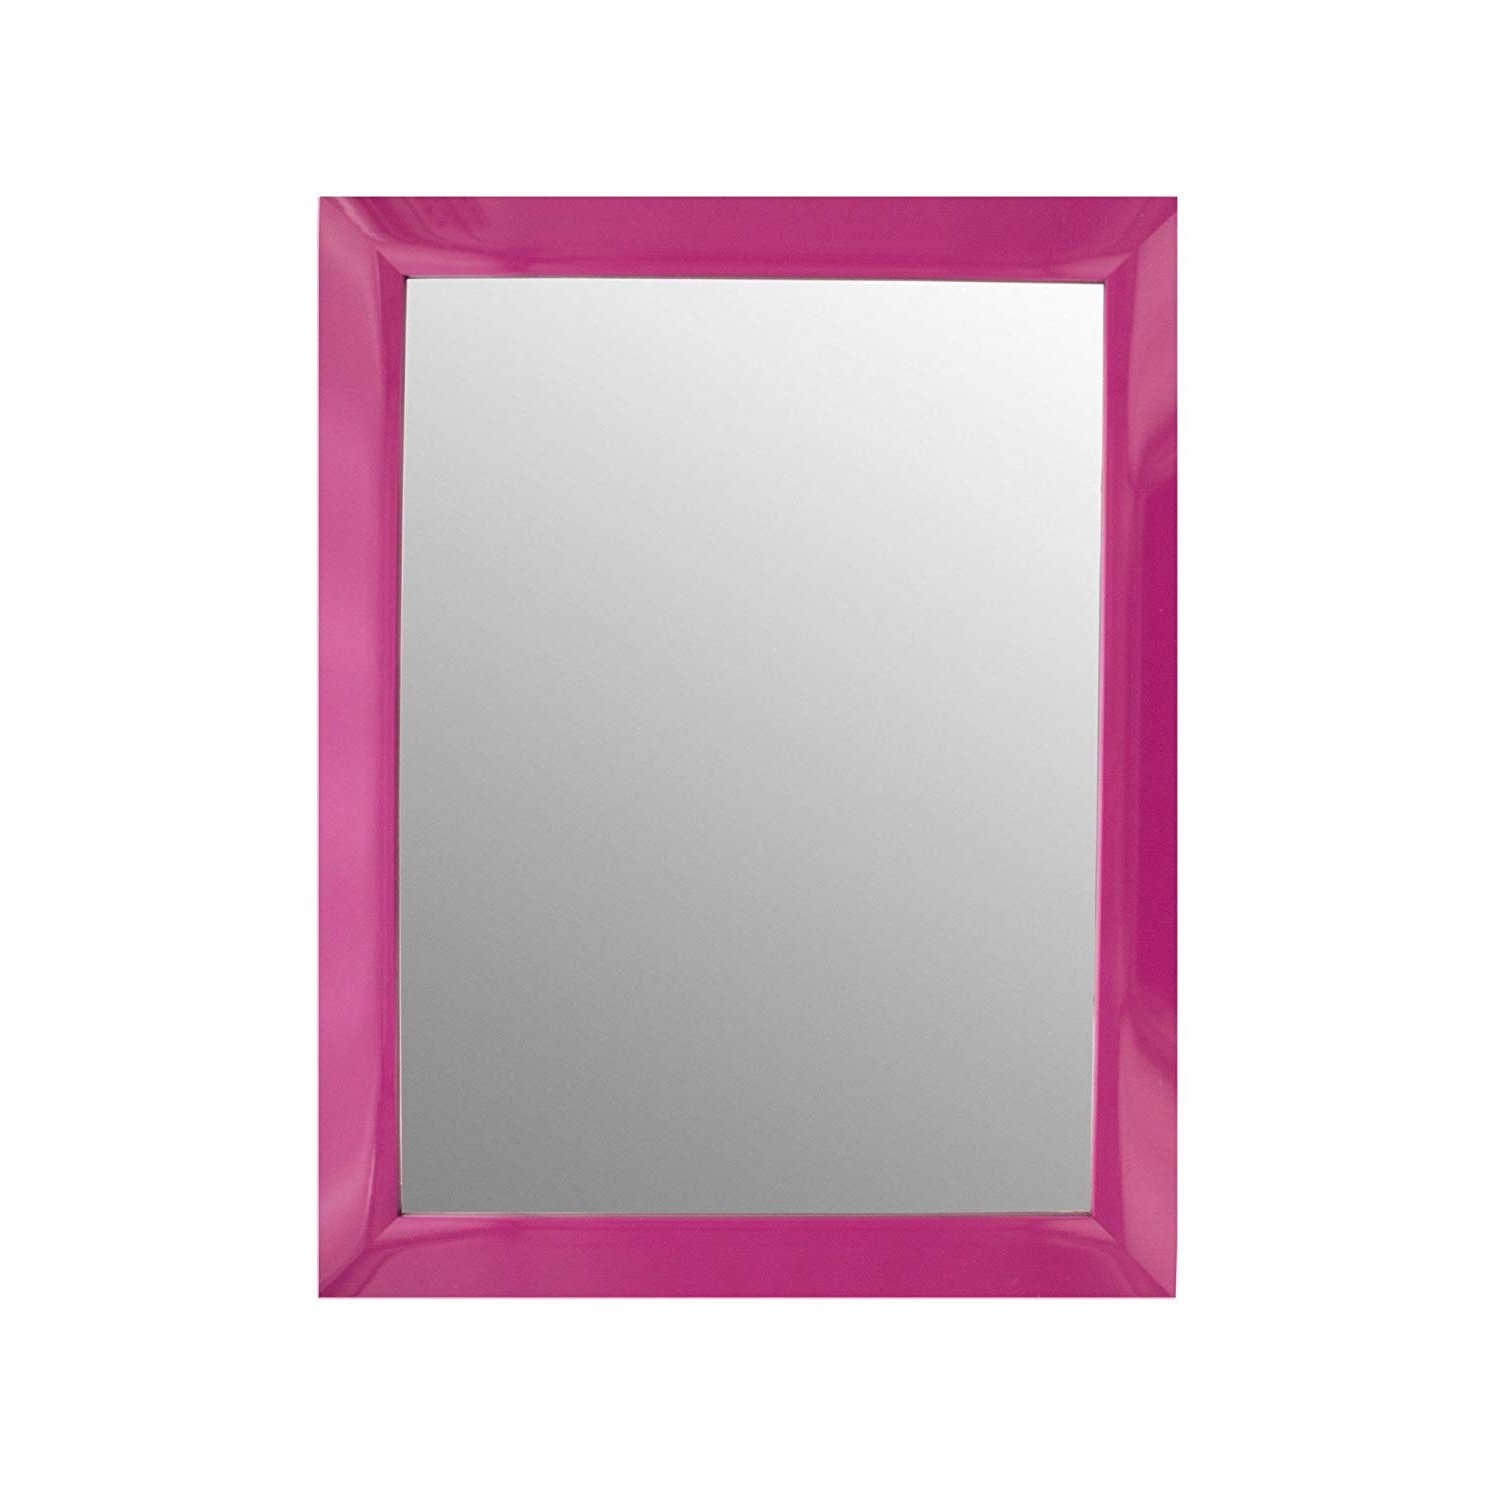 Amazon: 123 Wholesale – Set Of 6 Pink Rectangular Wall Mirror For Widely Used Pink Wall Mirrors (View 12 of 20)